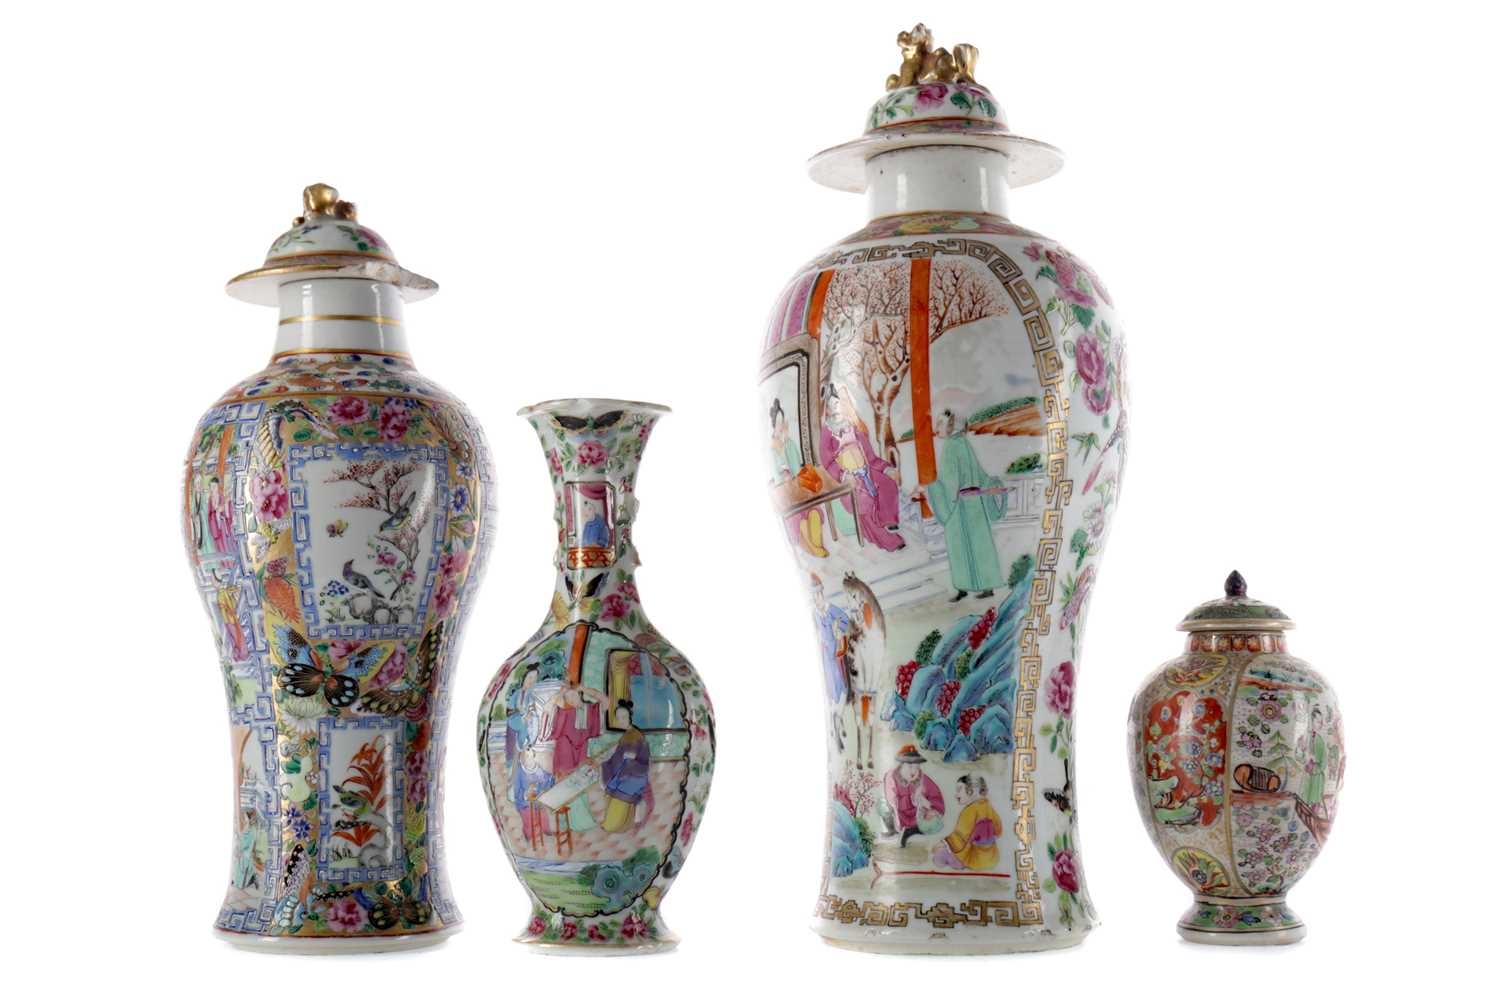 Lot 760 - A LOT OF CHINESE FAMILLE ROSE VASES